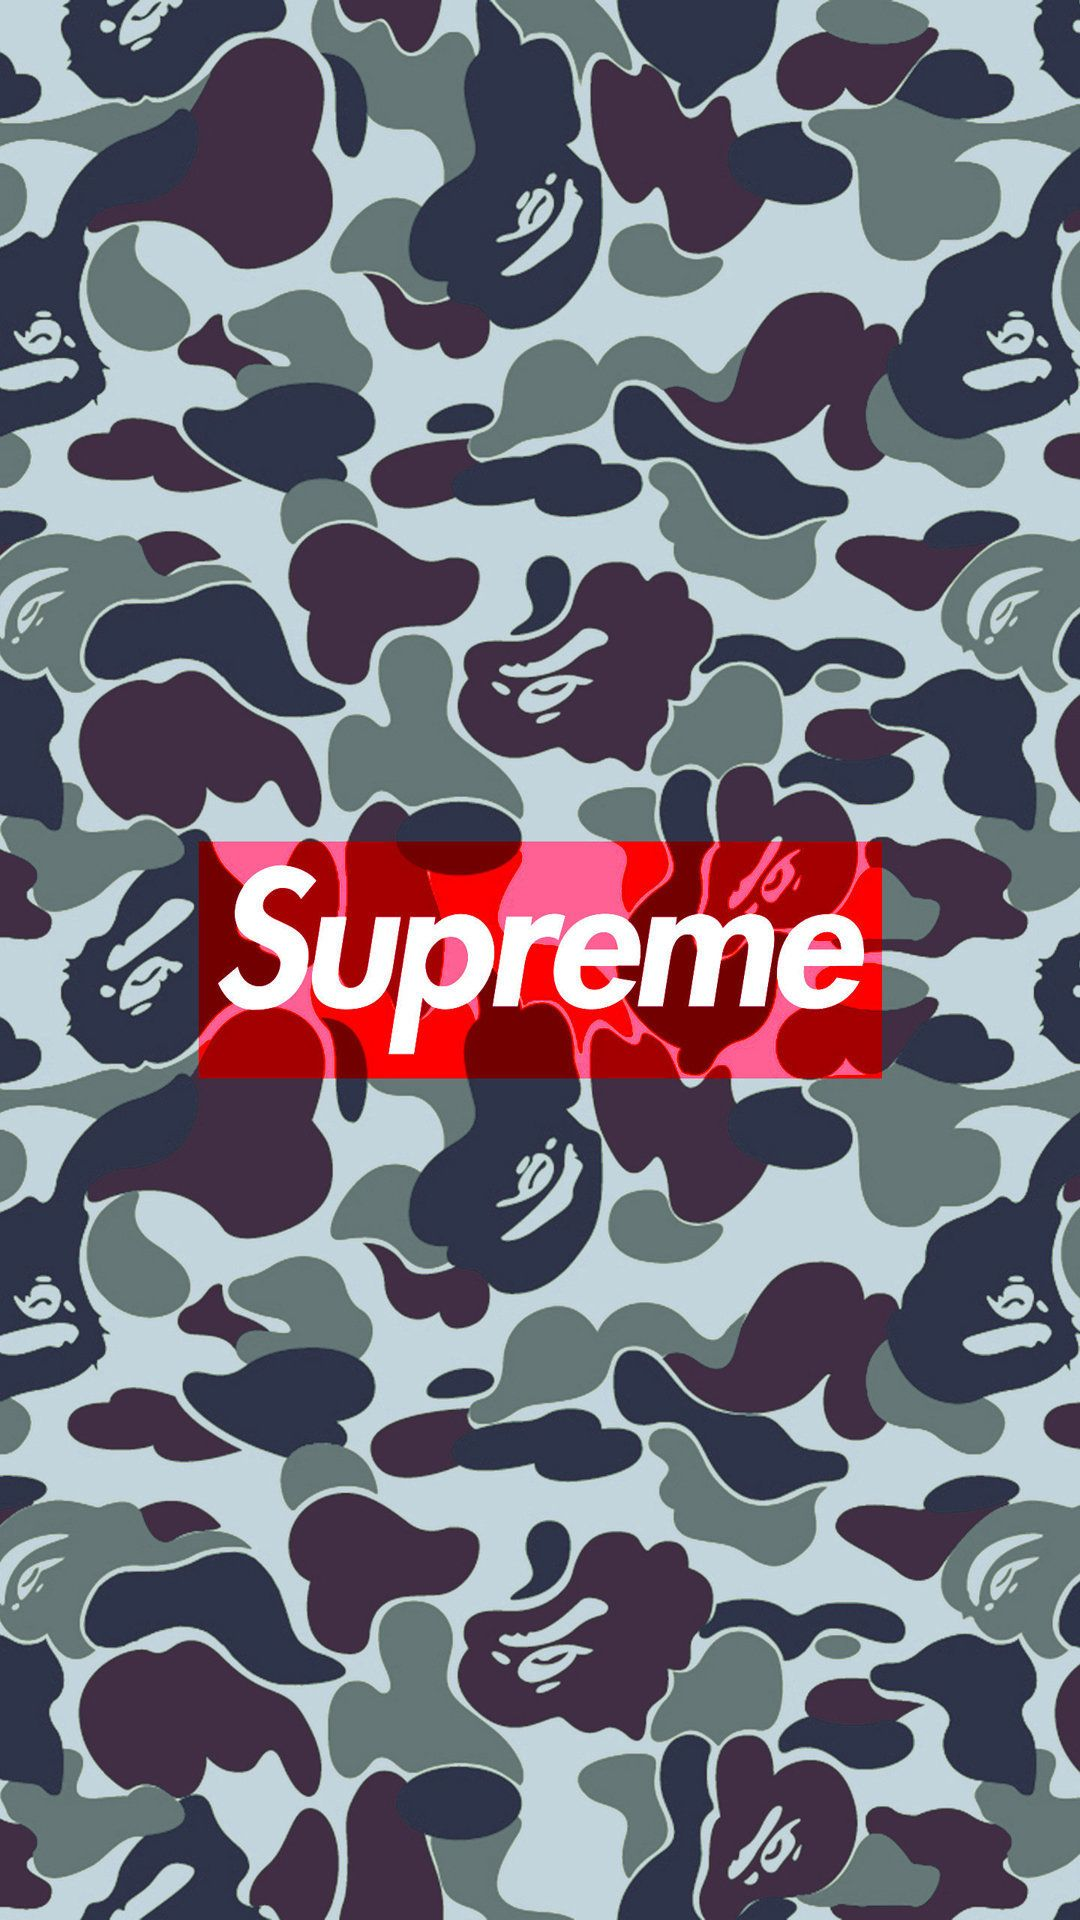 Stussy Wallpaper Iphone X Palace Skateboards Wallpaper Supreme Cool 334999 Hd Wallpaper Backgrounds Download